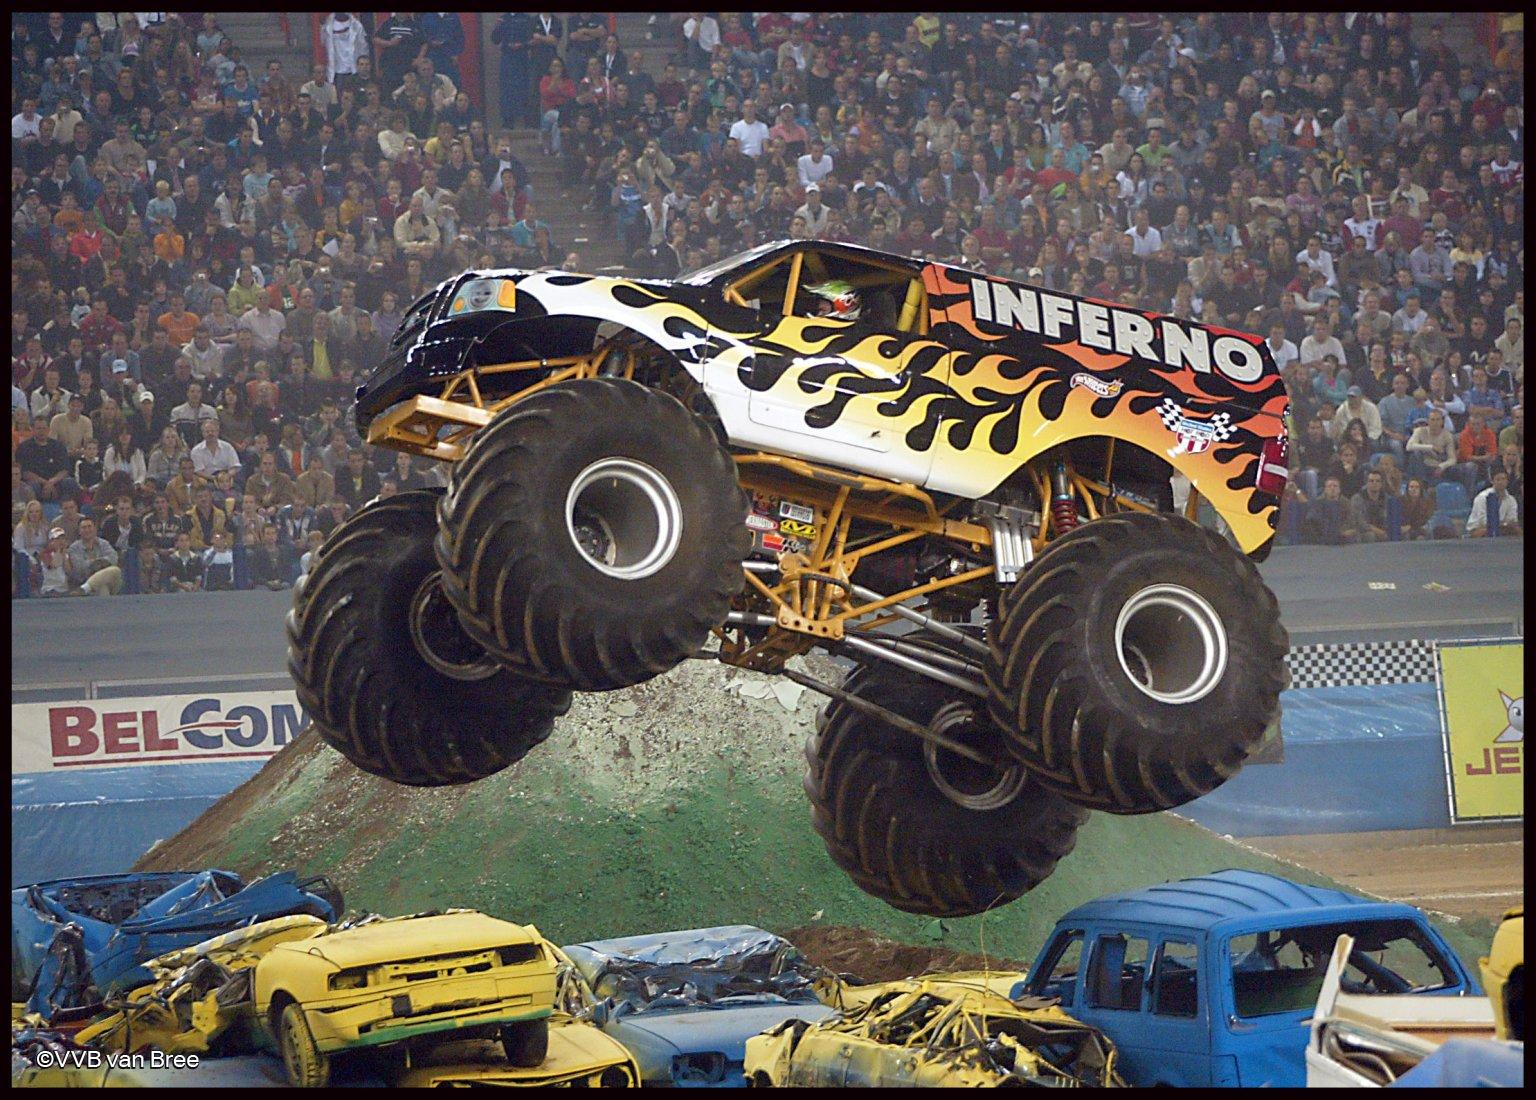 Monsterjam Gelredome